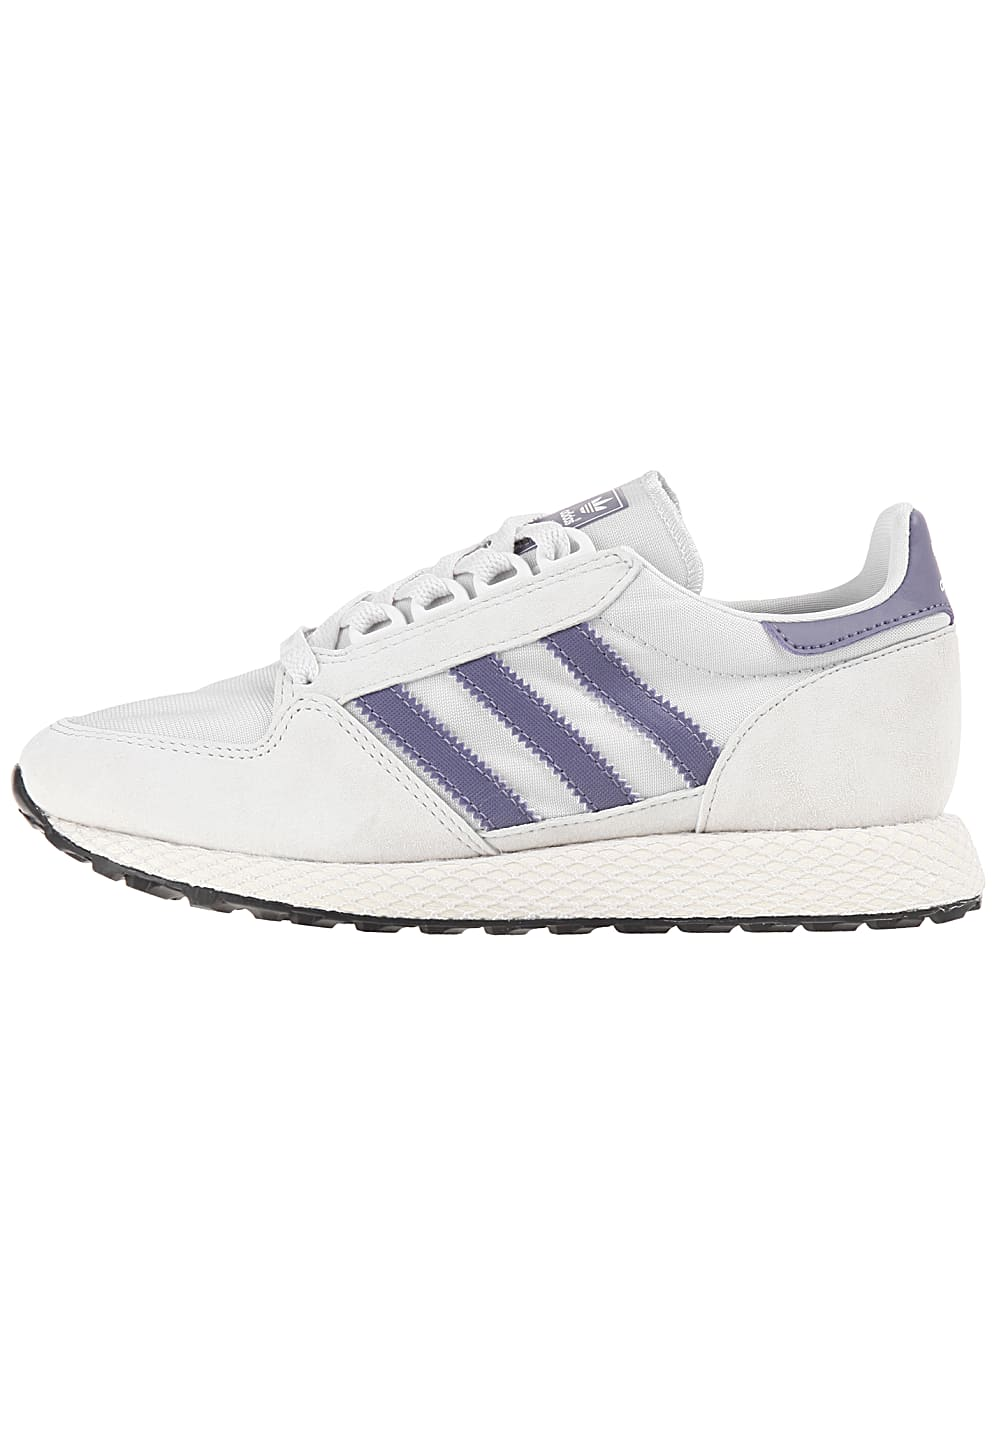 ADIDAS ORIGINALS Forest Grove - Sneakers voor Dames - Beige